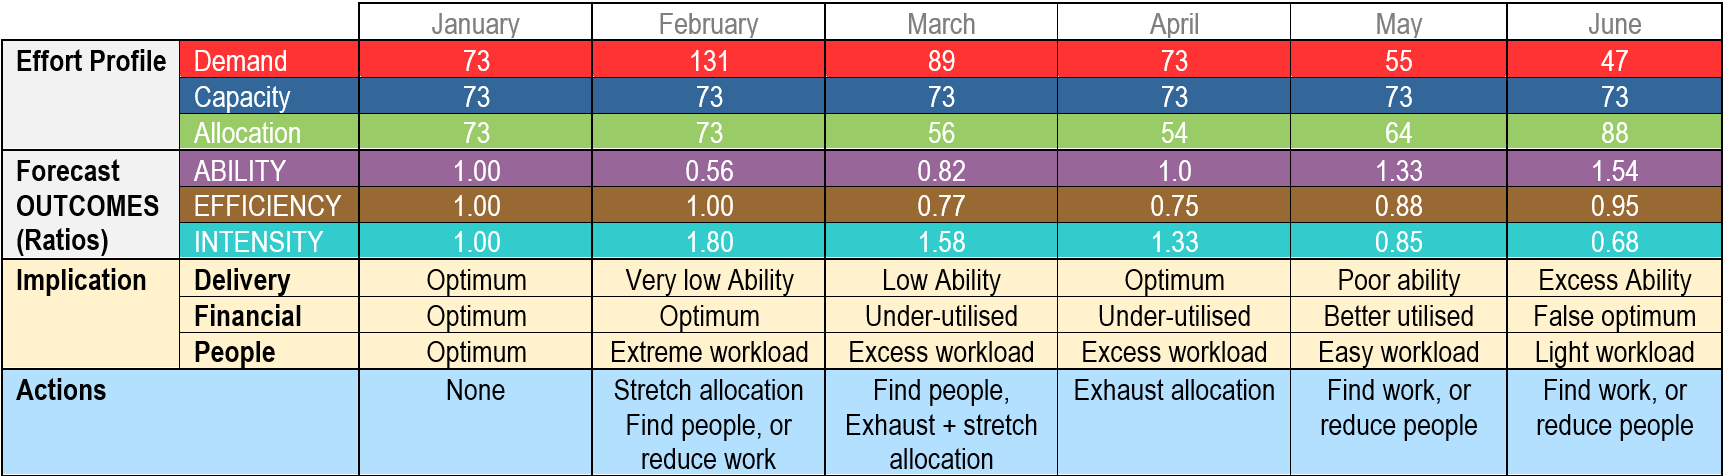 Effort Management Table. Effort profiles, Forecast Outcomes, Implications, Actions